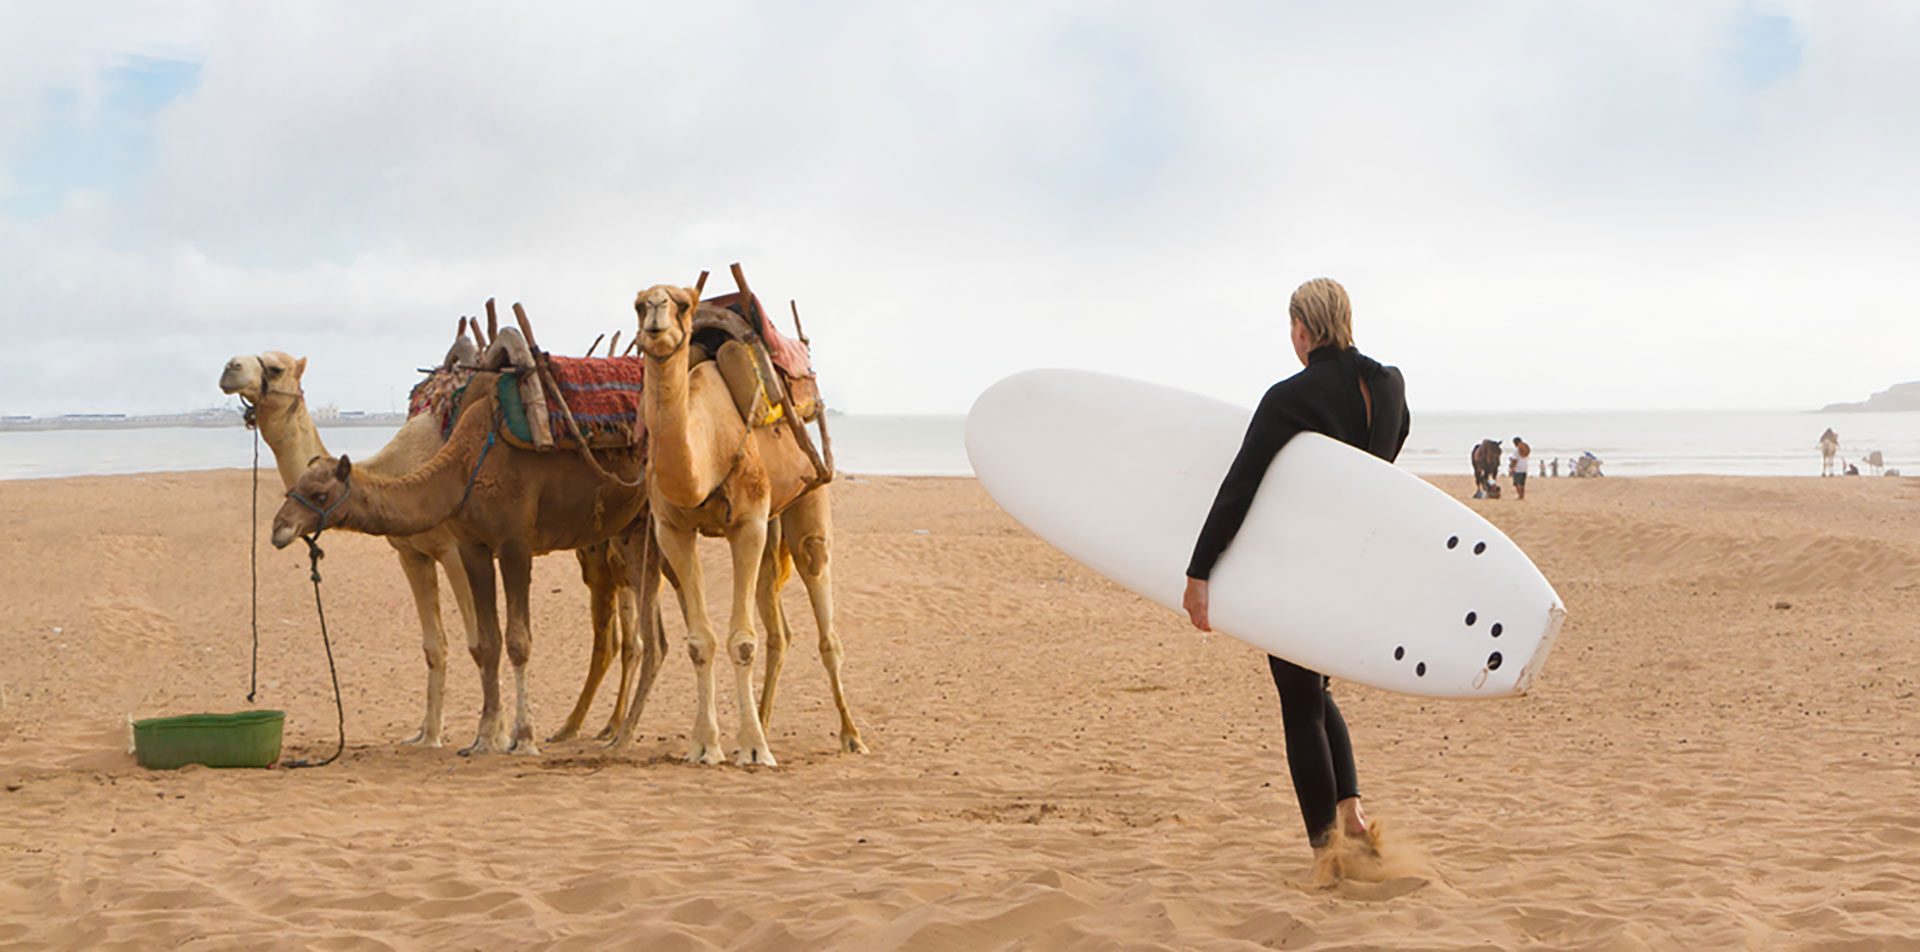 Africa Morocco Essaouira man walking carrying surfboard at beach in tan sand by camels resting - luxury vacation destinations